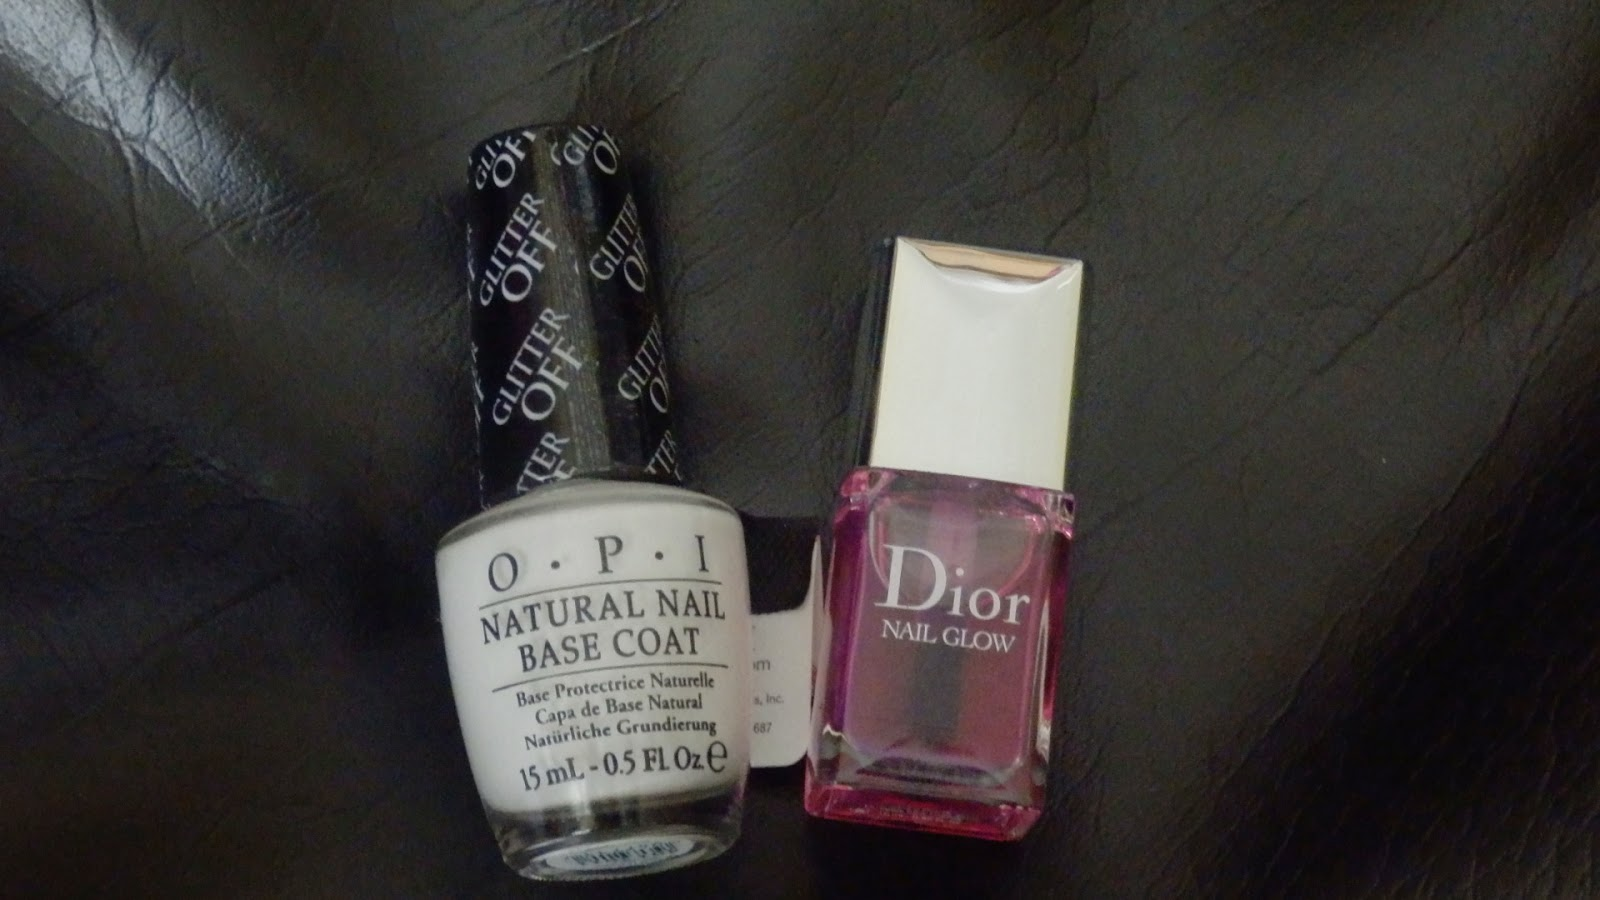 OPI Glitter Off Peelable Base Coat & Dior Nail Glow